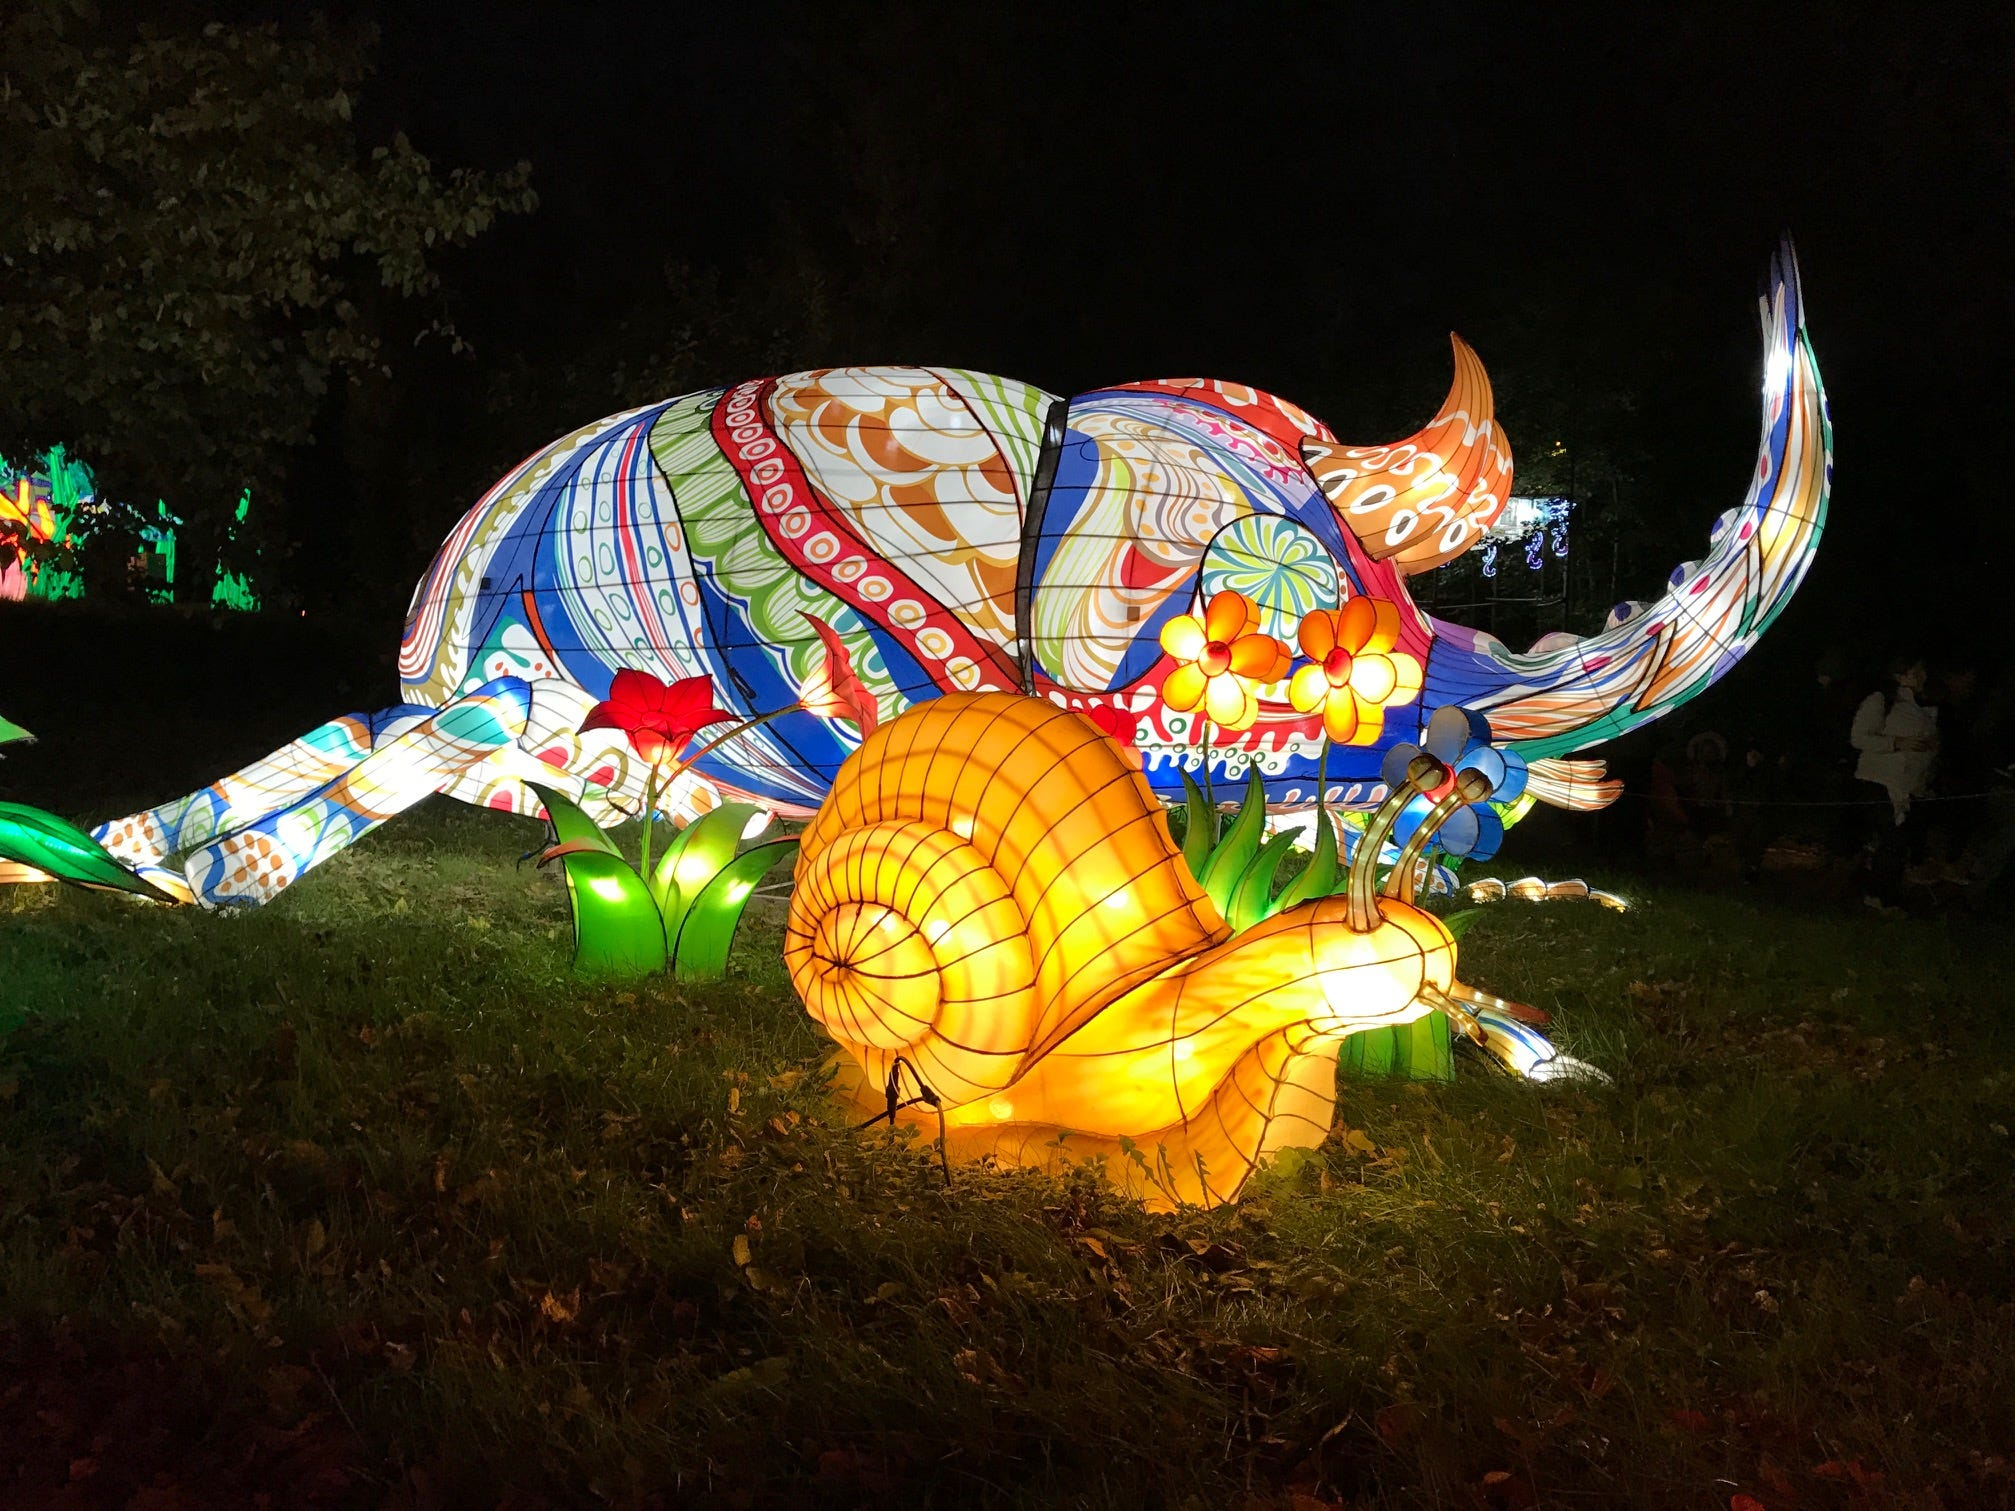 The rhinoceros beetle is a colorful display in Insect Land at the 2018 China Lights lantern festival on the grounds of the Boerner Botanical Gardens. The festival began Sept. 21 and runs through 10 p.m. Sunday, Oct. 28.